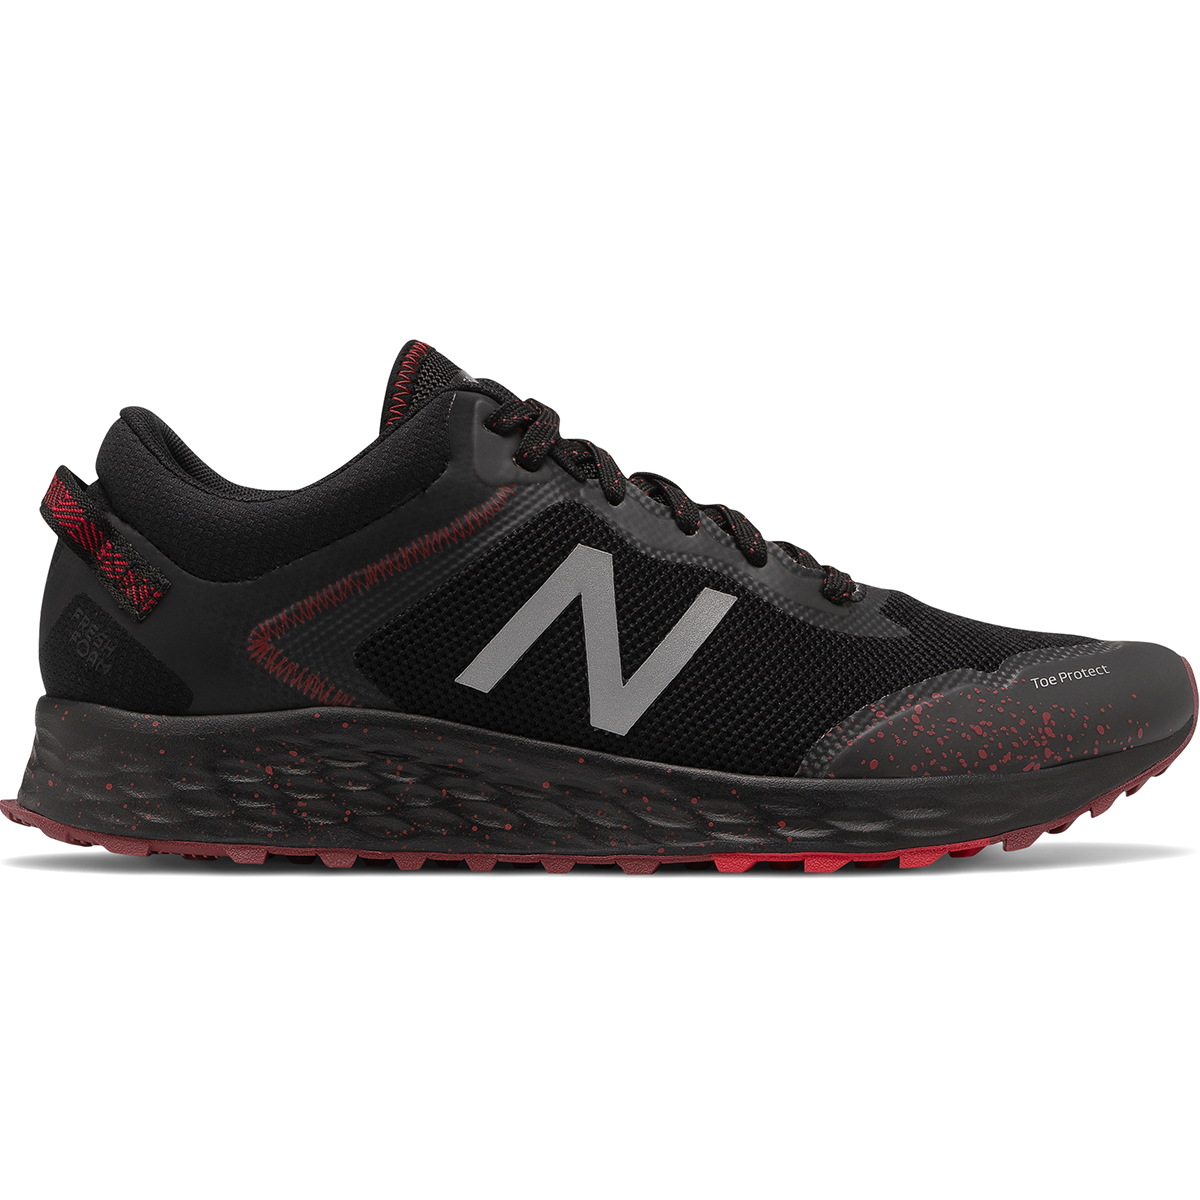 New Balance Men's Fresh Foam Arishi Trail Running Shoe - Black, 9.5